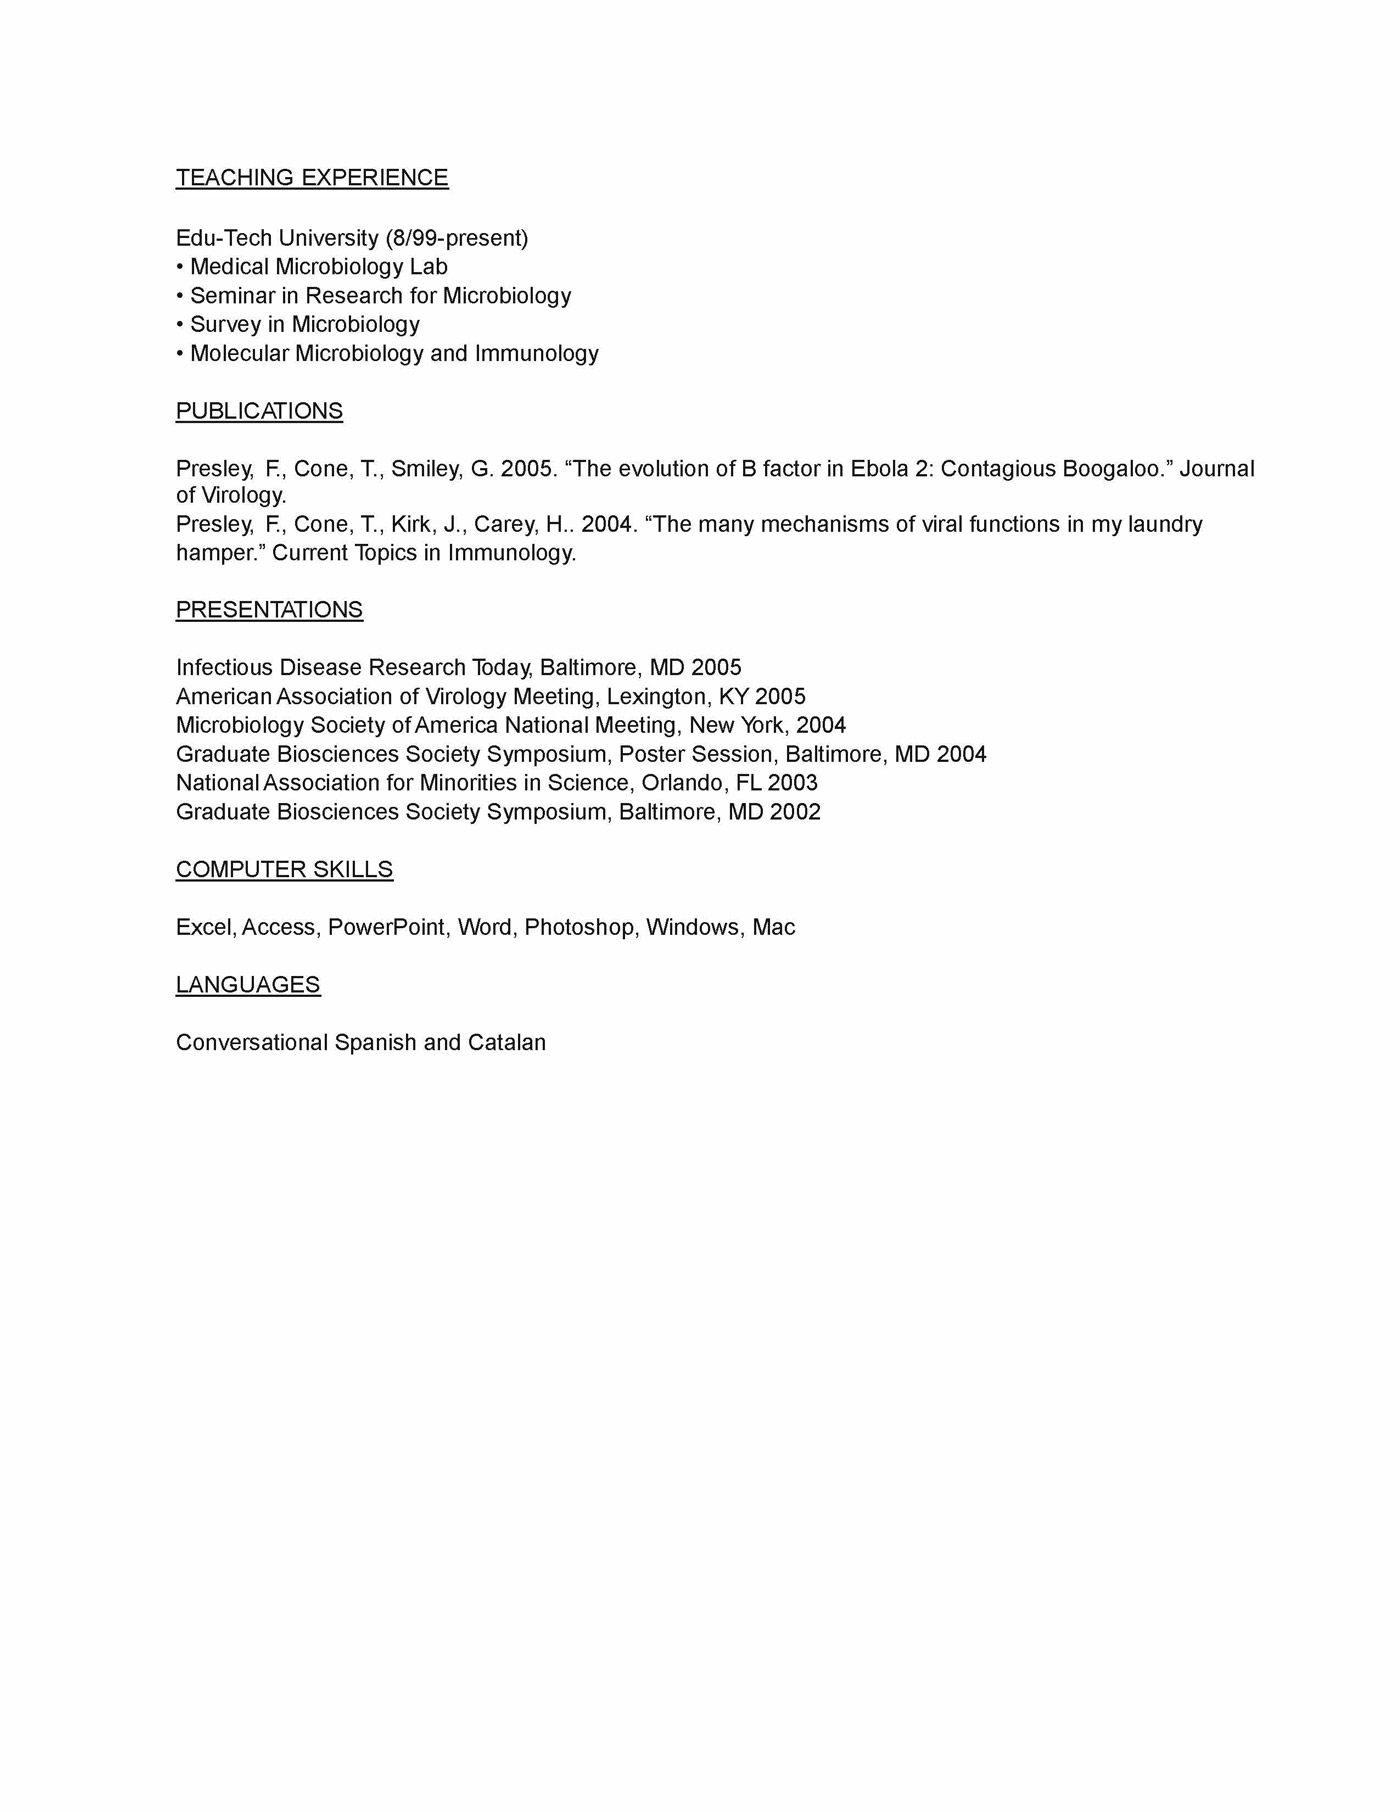 microbiology phd sample work objective microbiologist resume resumeg - Microbiologist Resume Sample